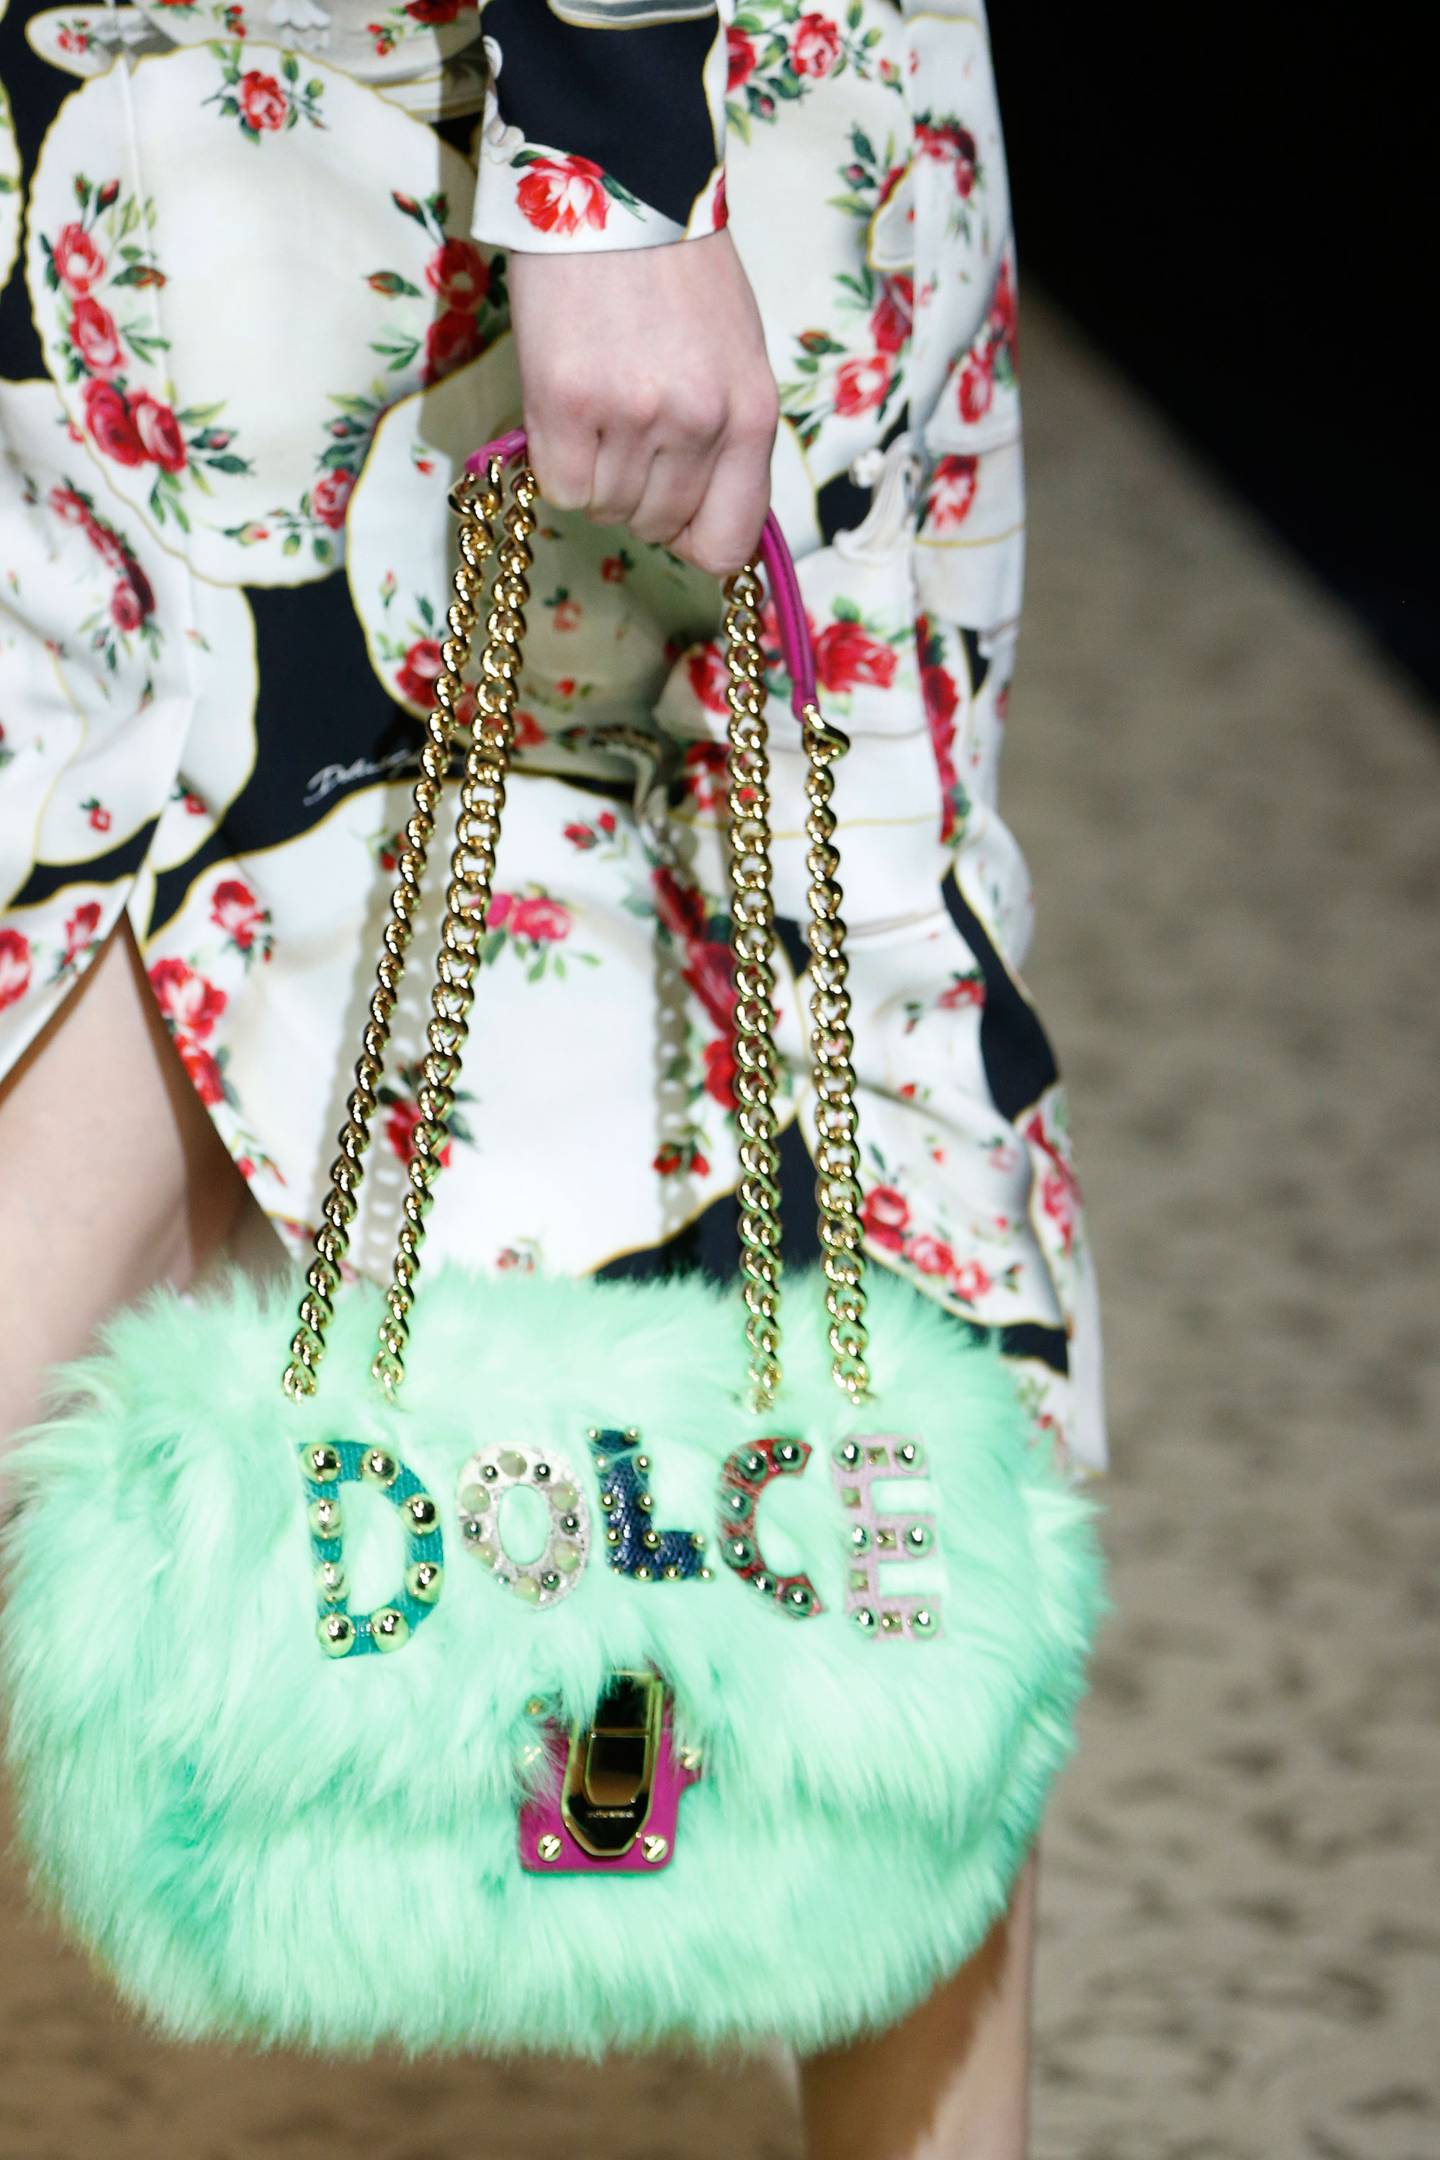 dolce-gabanna-feather-bag